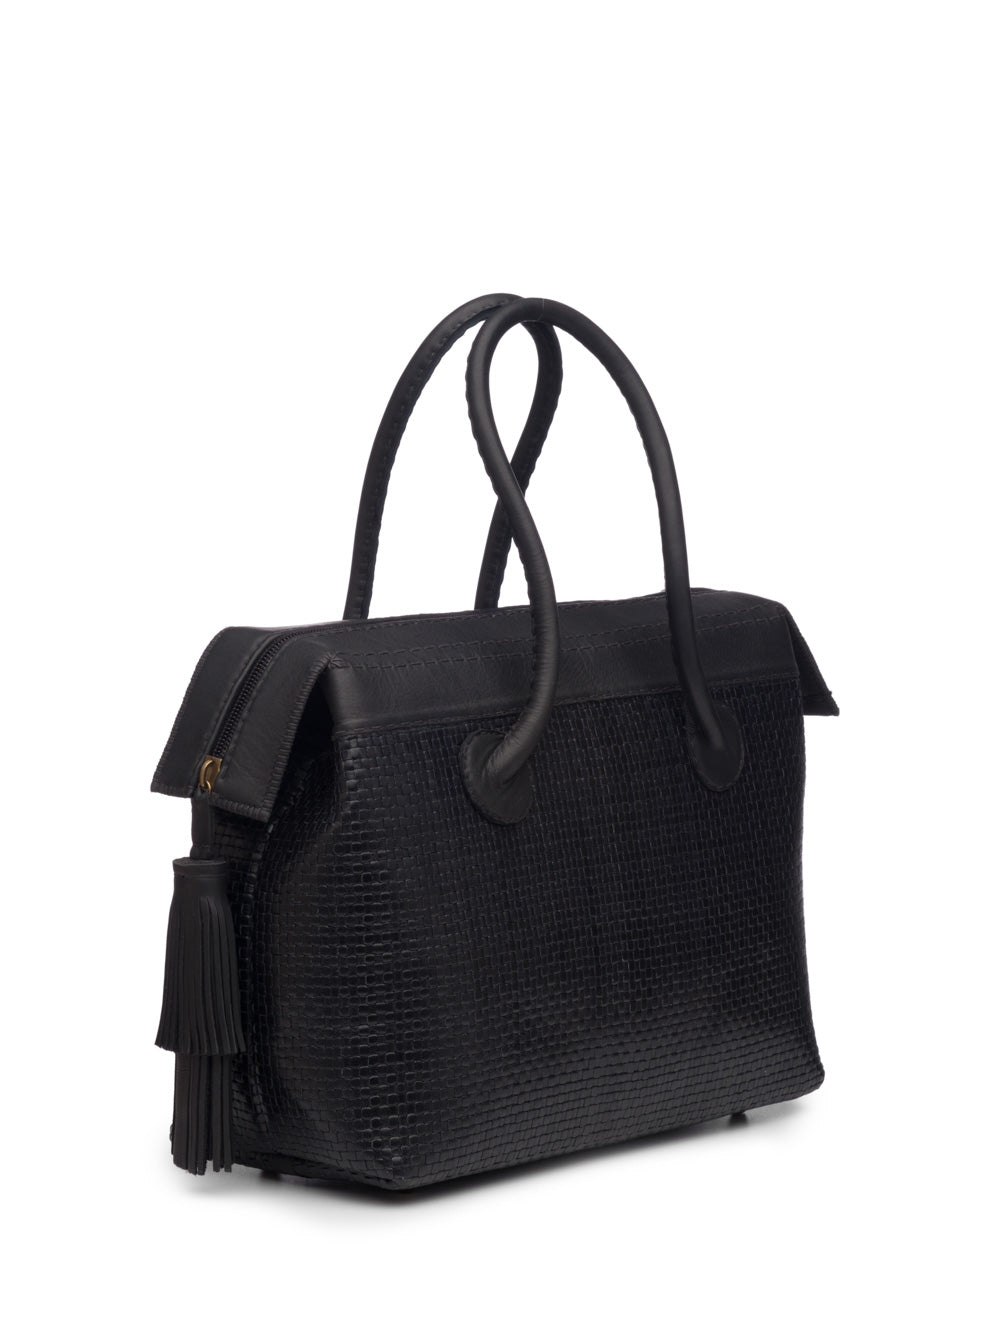 Black Woven Leather Handbag